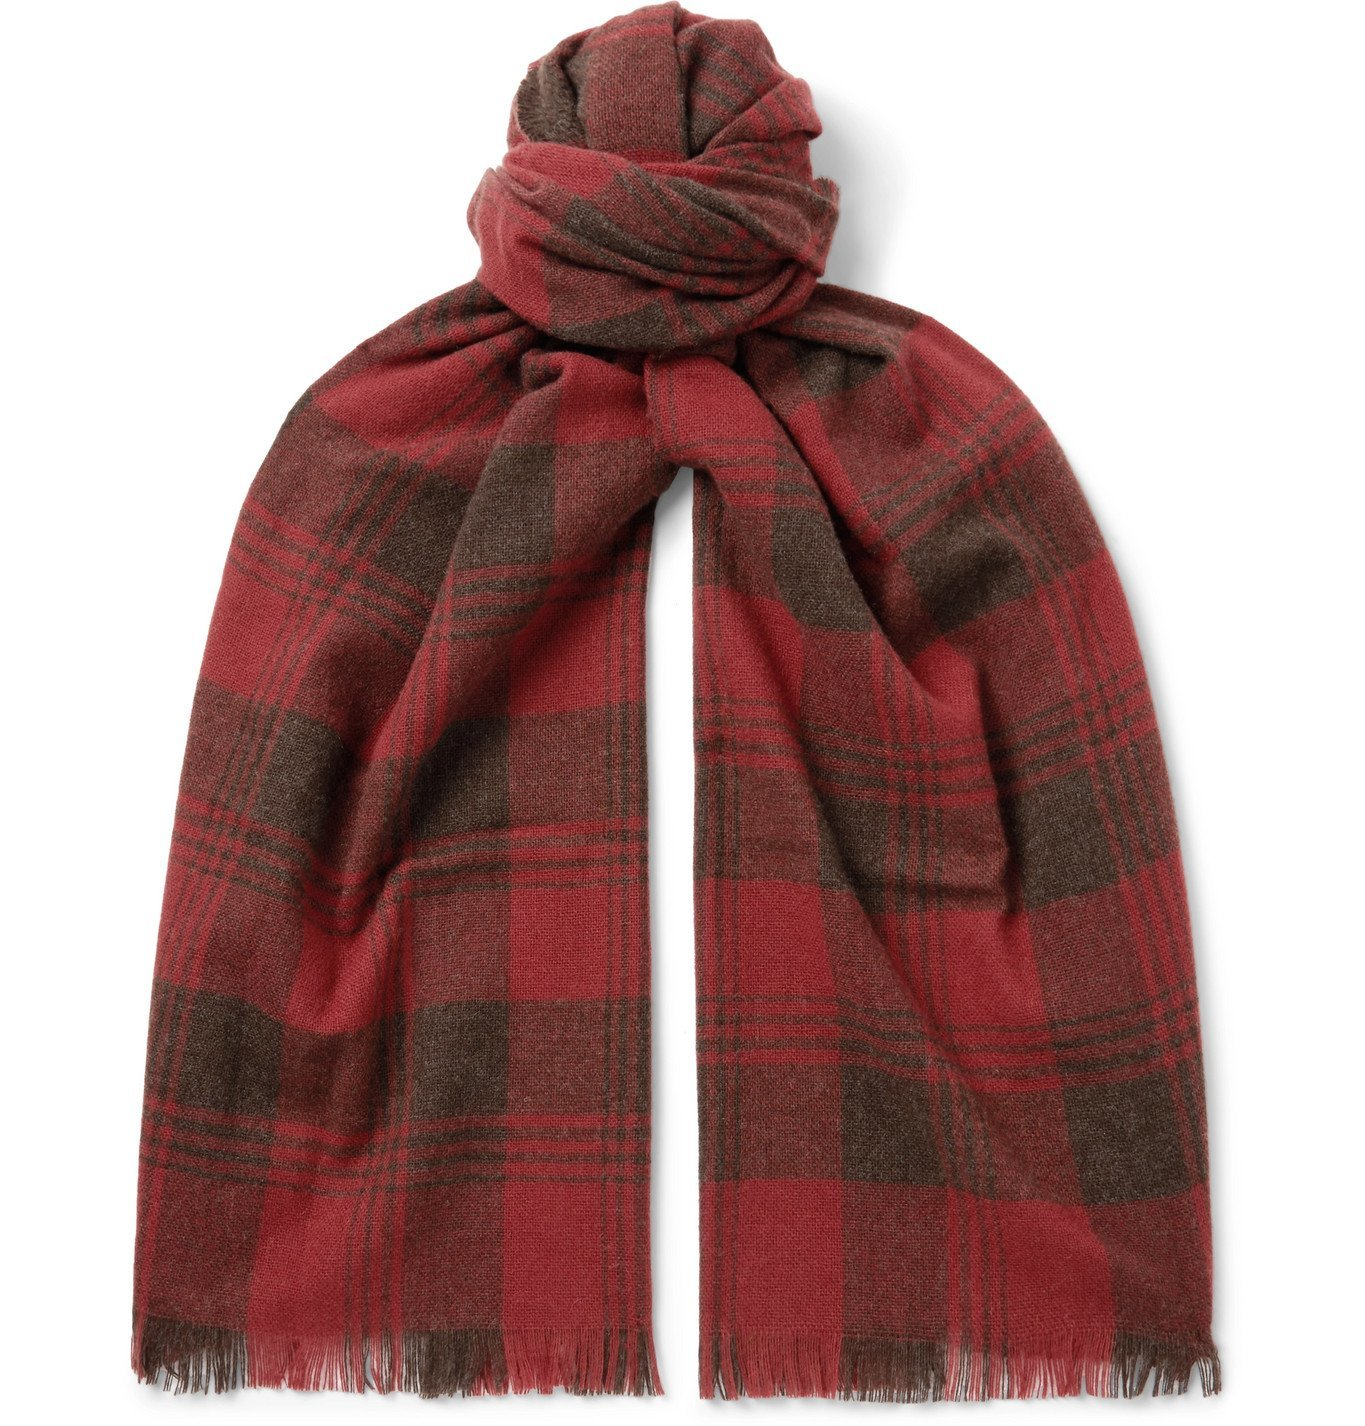 RRL - Wyatt Fringed Checked Wool and Cashmere-Blend Scarf - Red